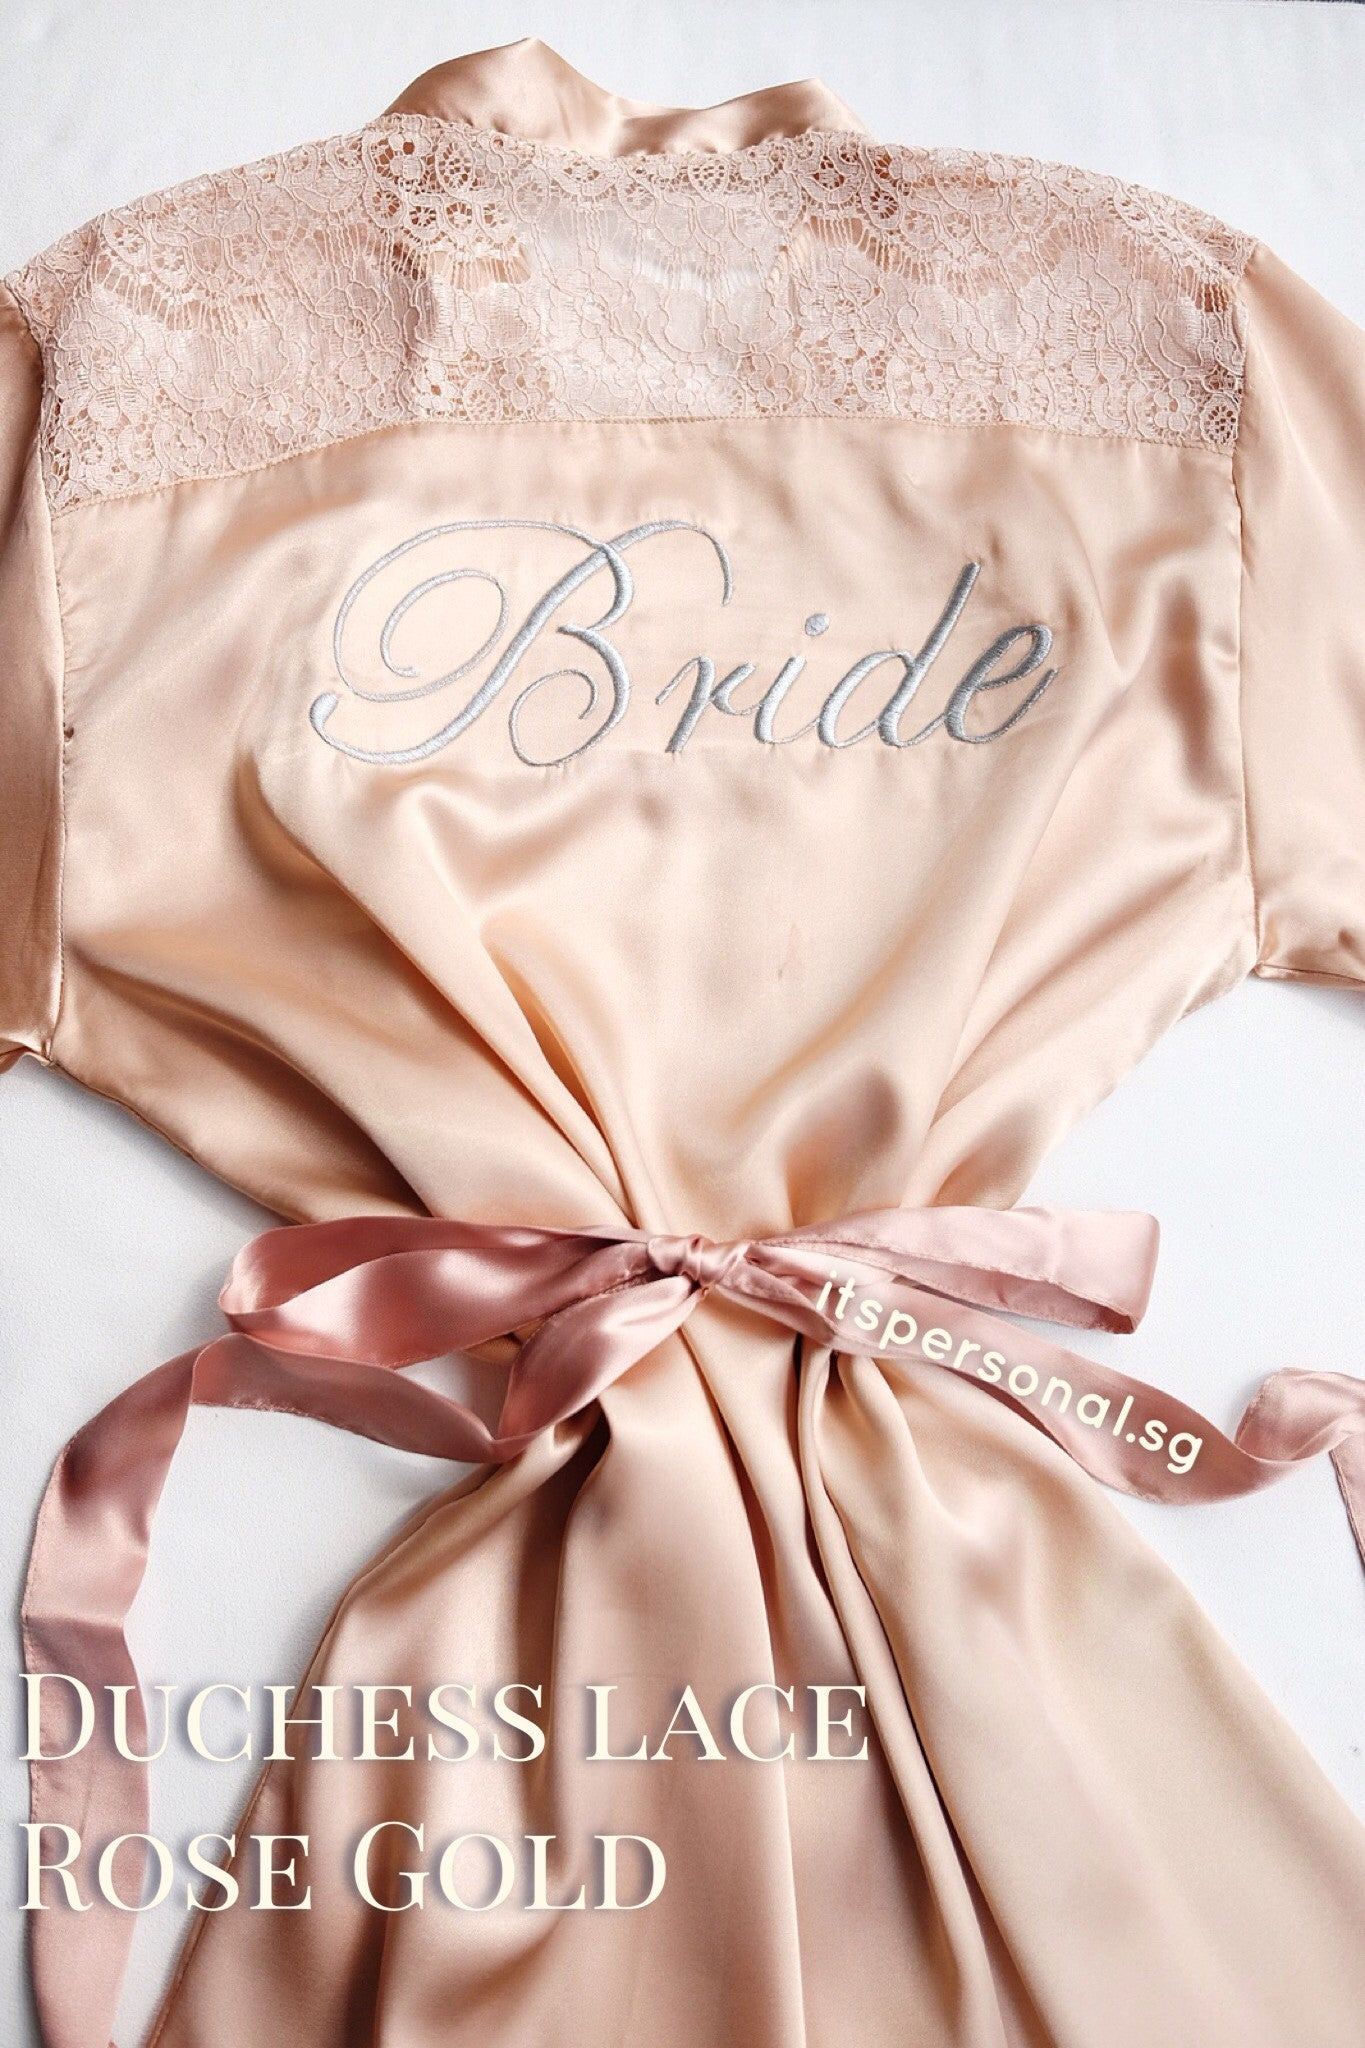 Bridal Satin Robe (Personalised with embroidery name) - It s Personal c19006404